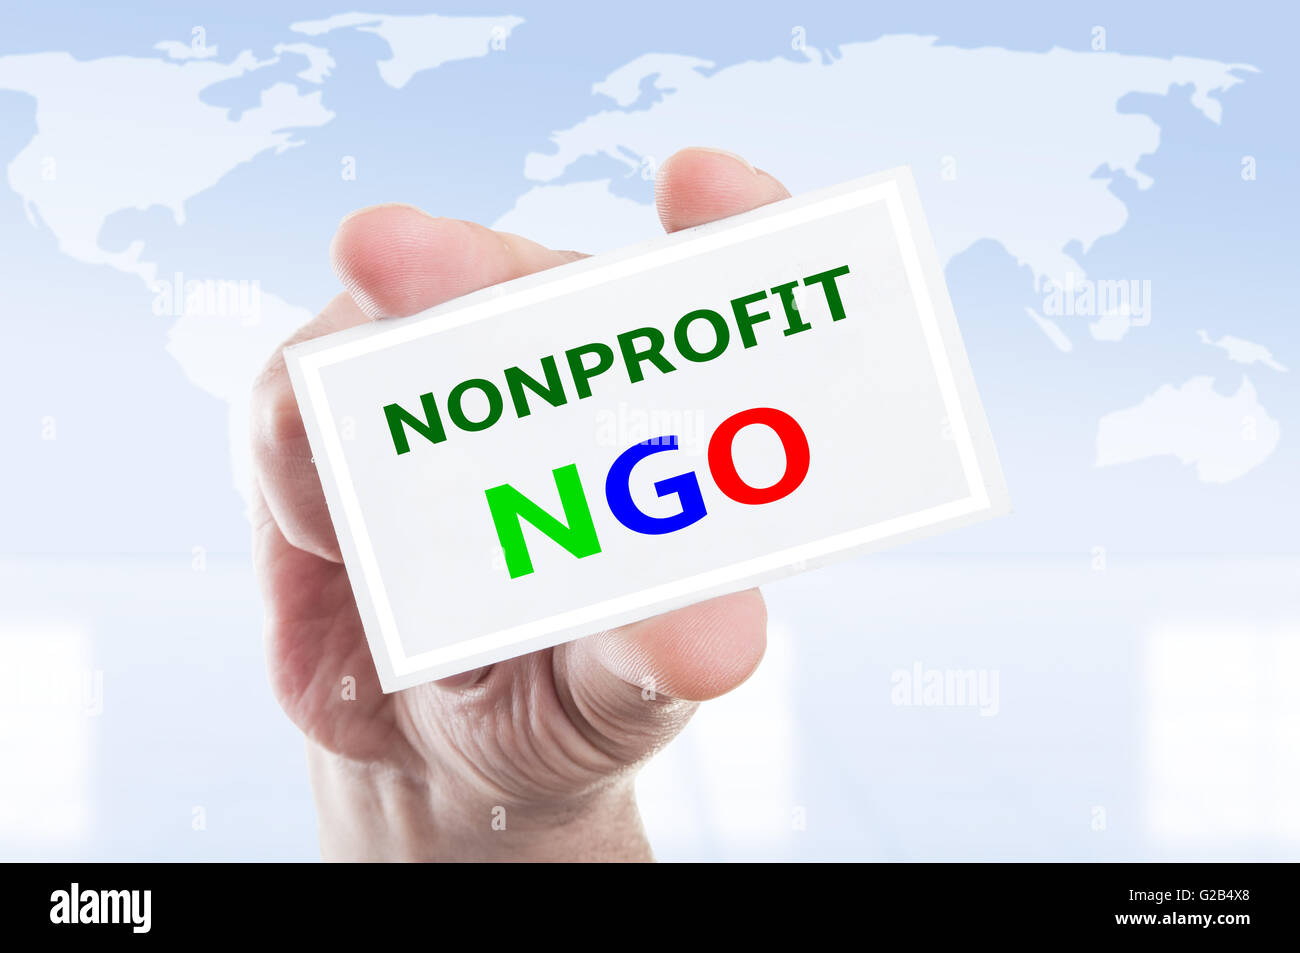 Hand holding nonprofit NGO card concept on world map background - Stock Image